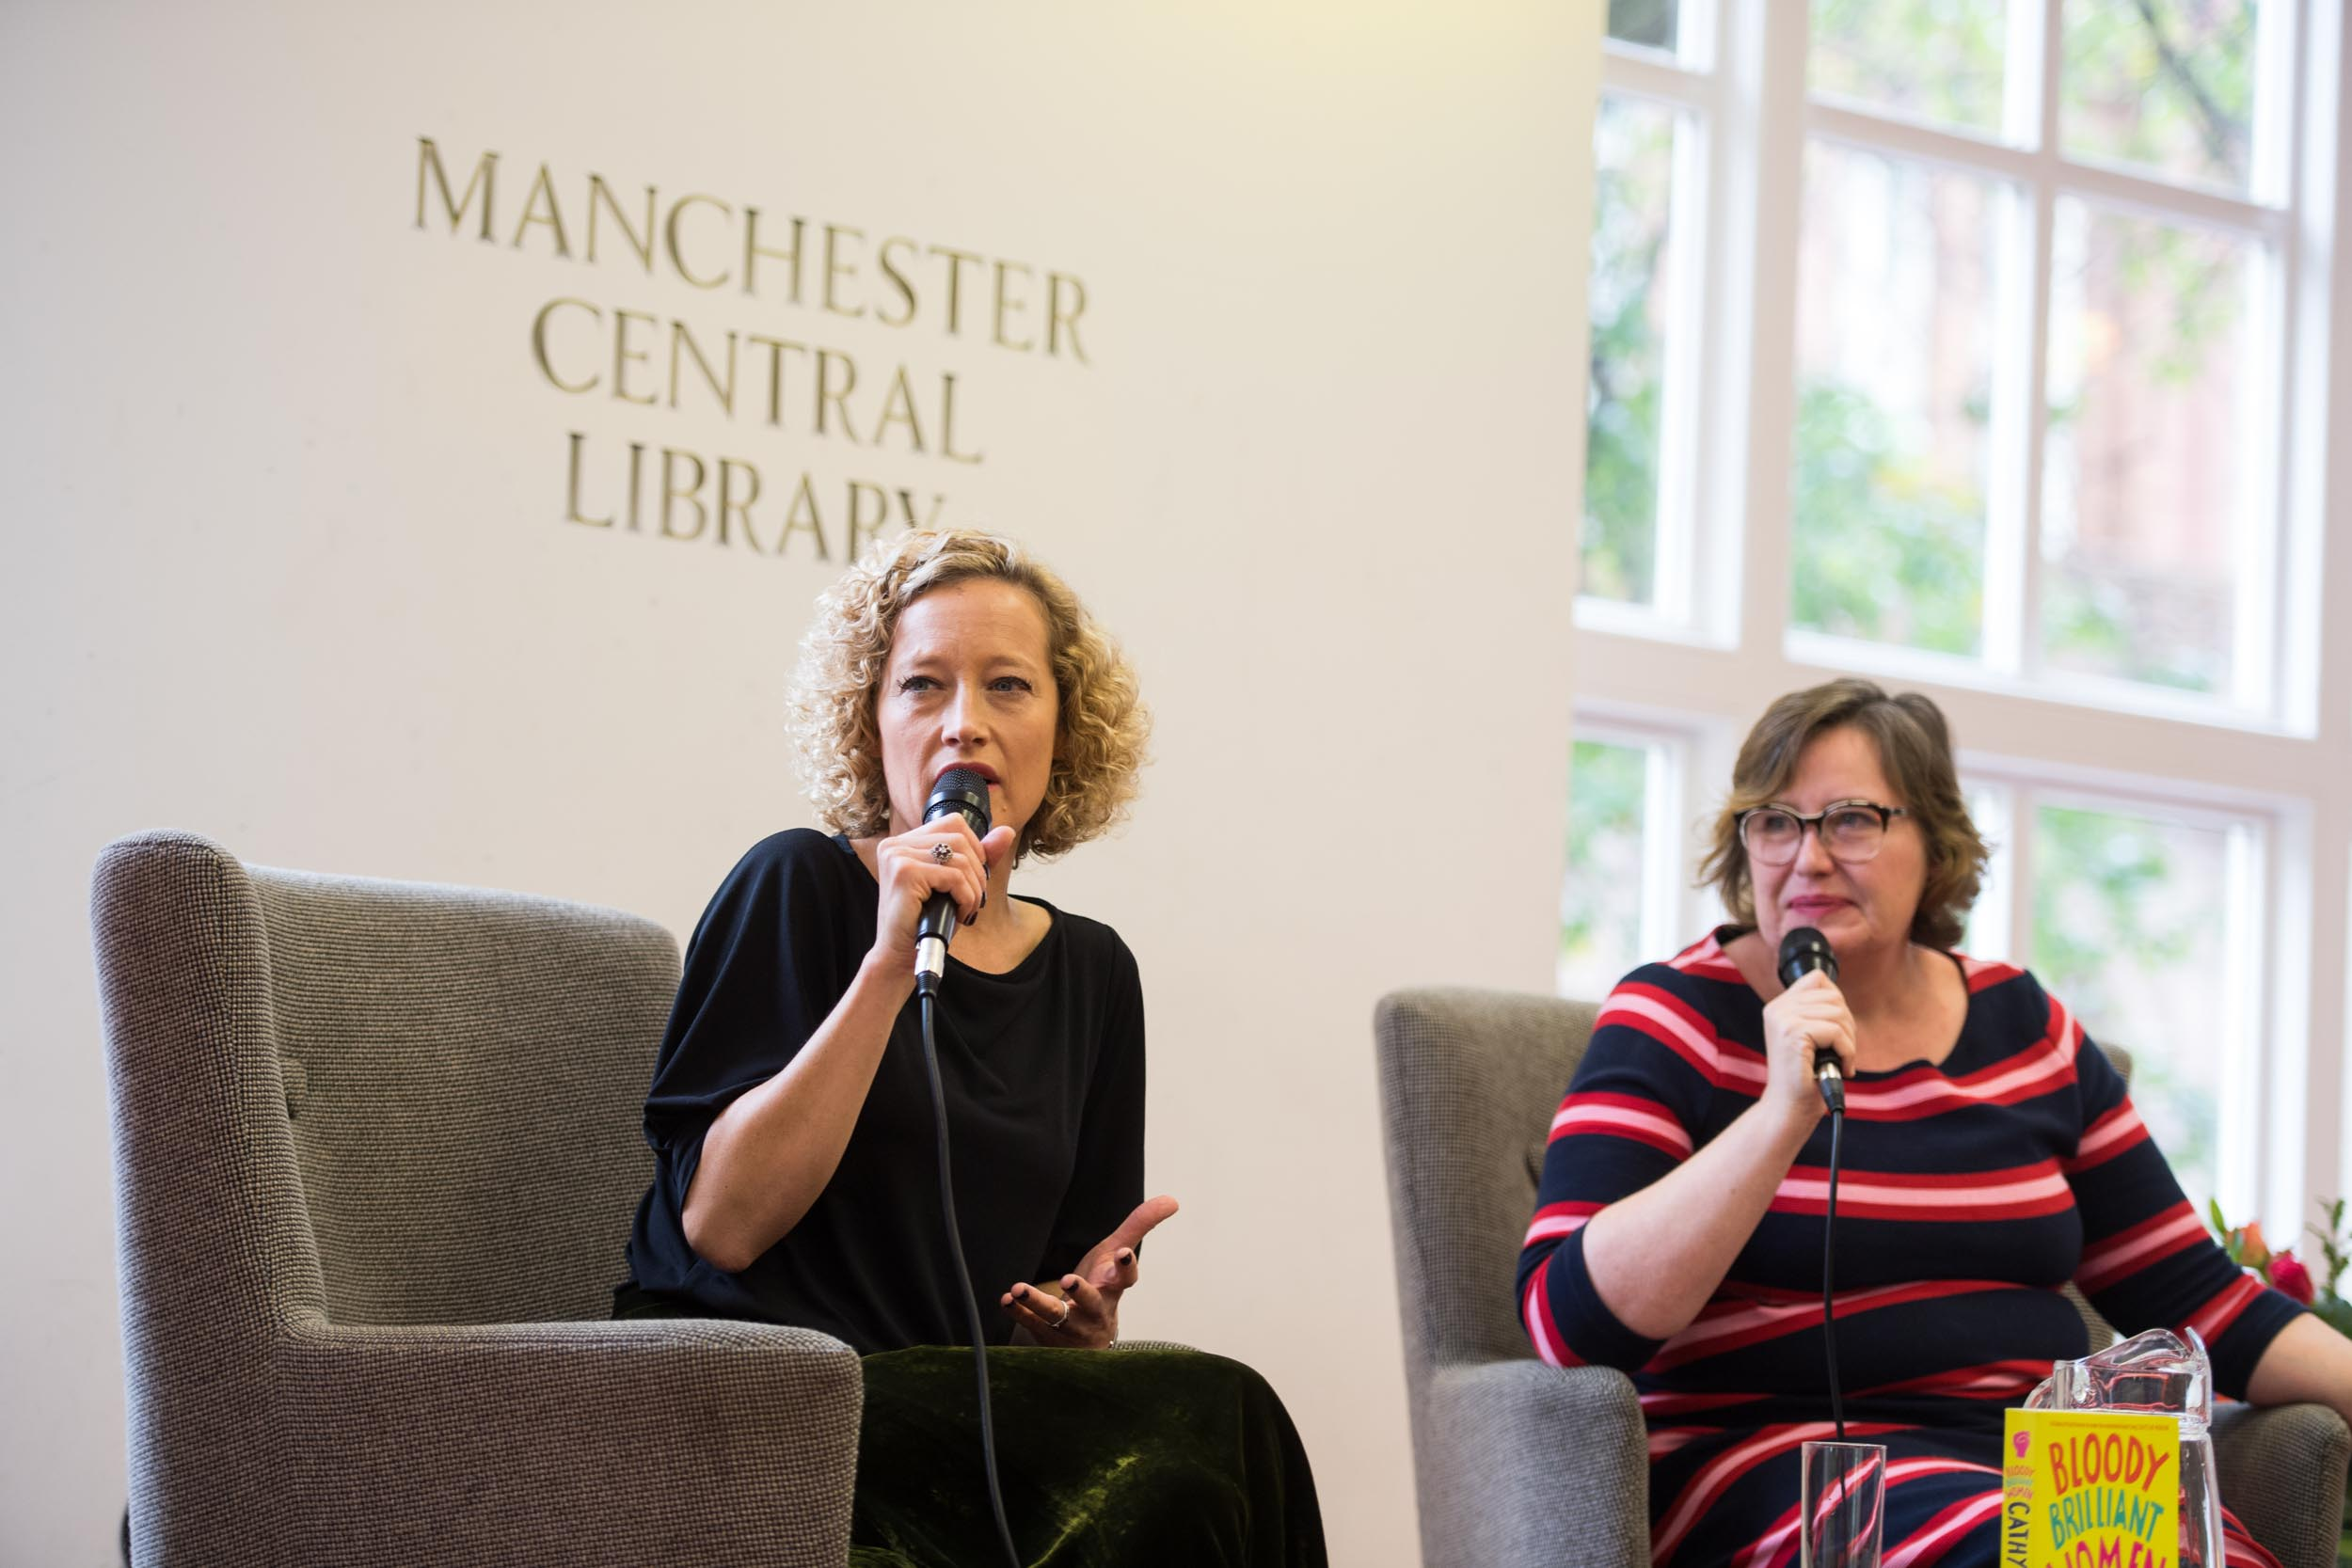 Cathy Newman C4 Alex Clark Manchester Central Library Manchester Literature Festival